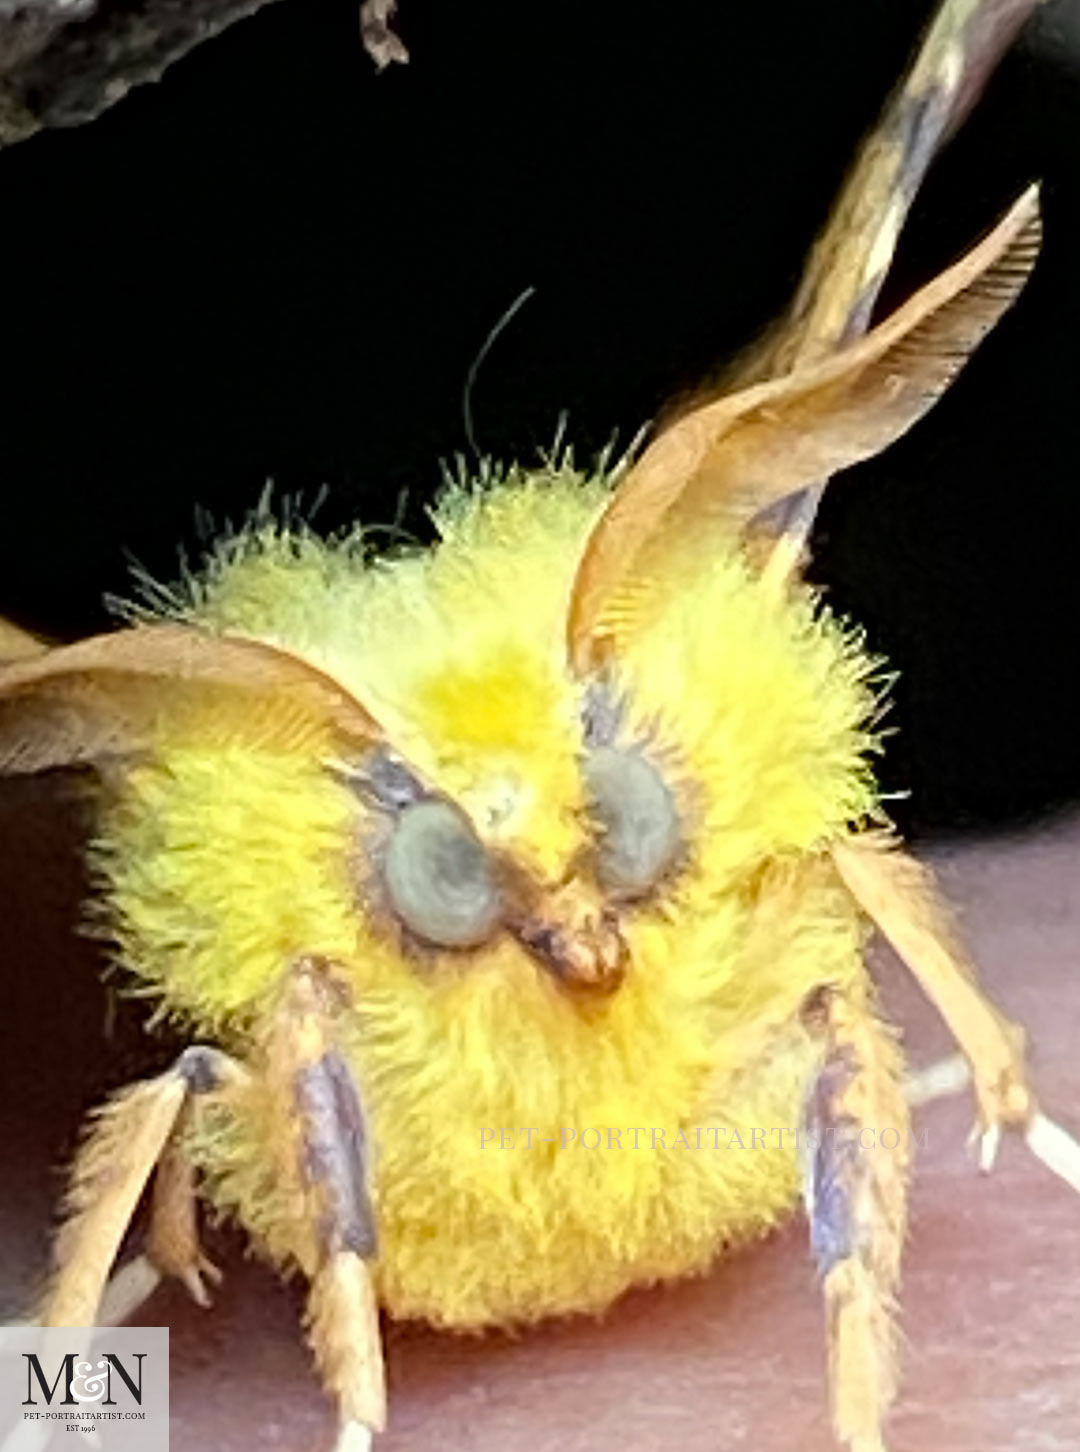 Melanie's August Monthly News Funny moth